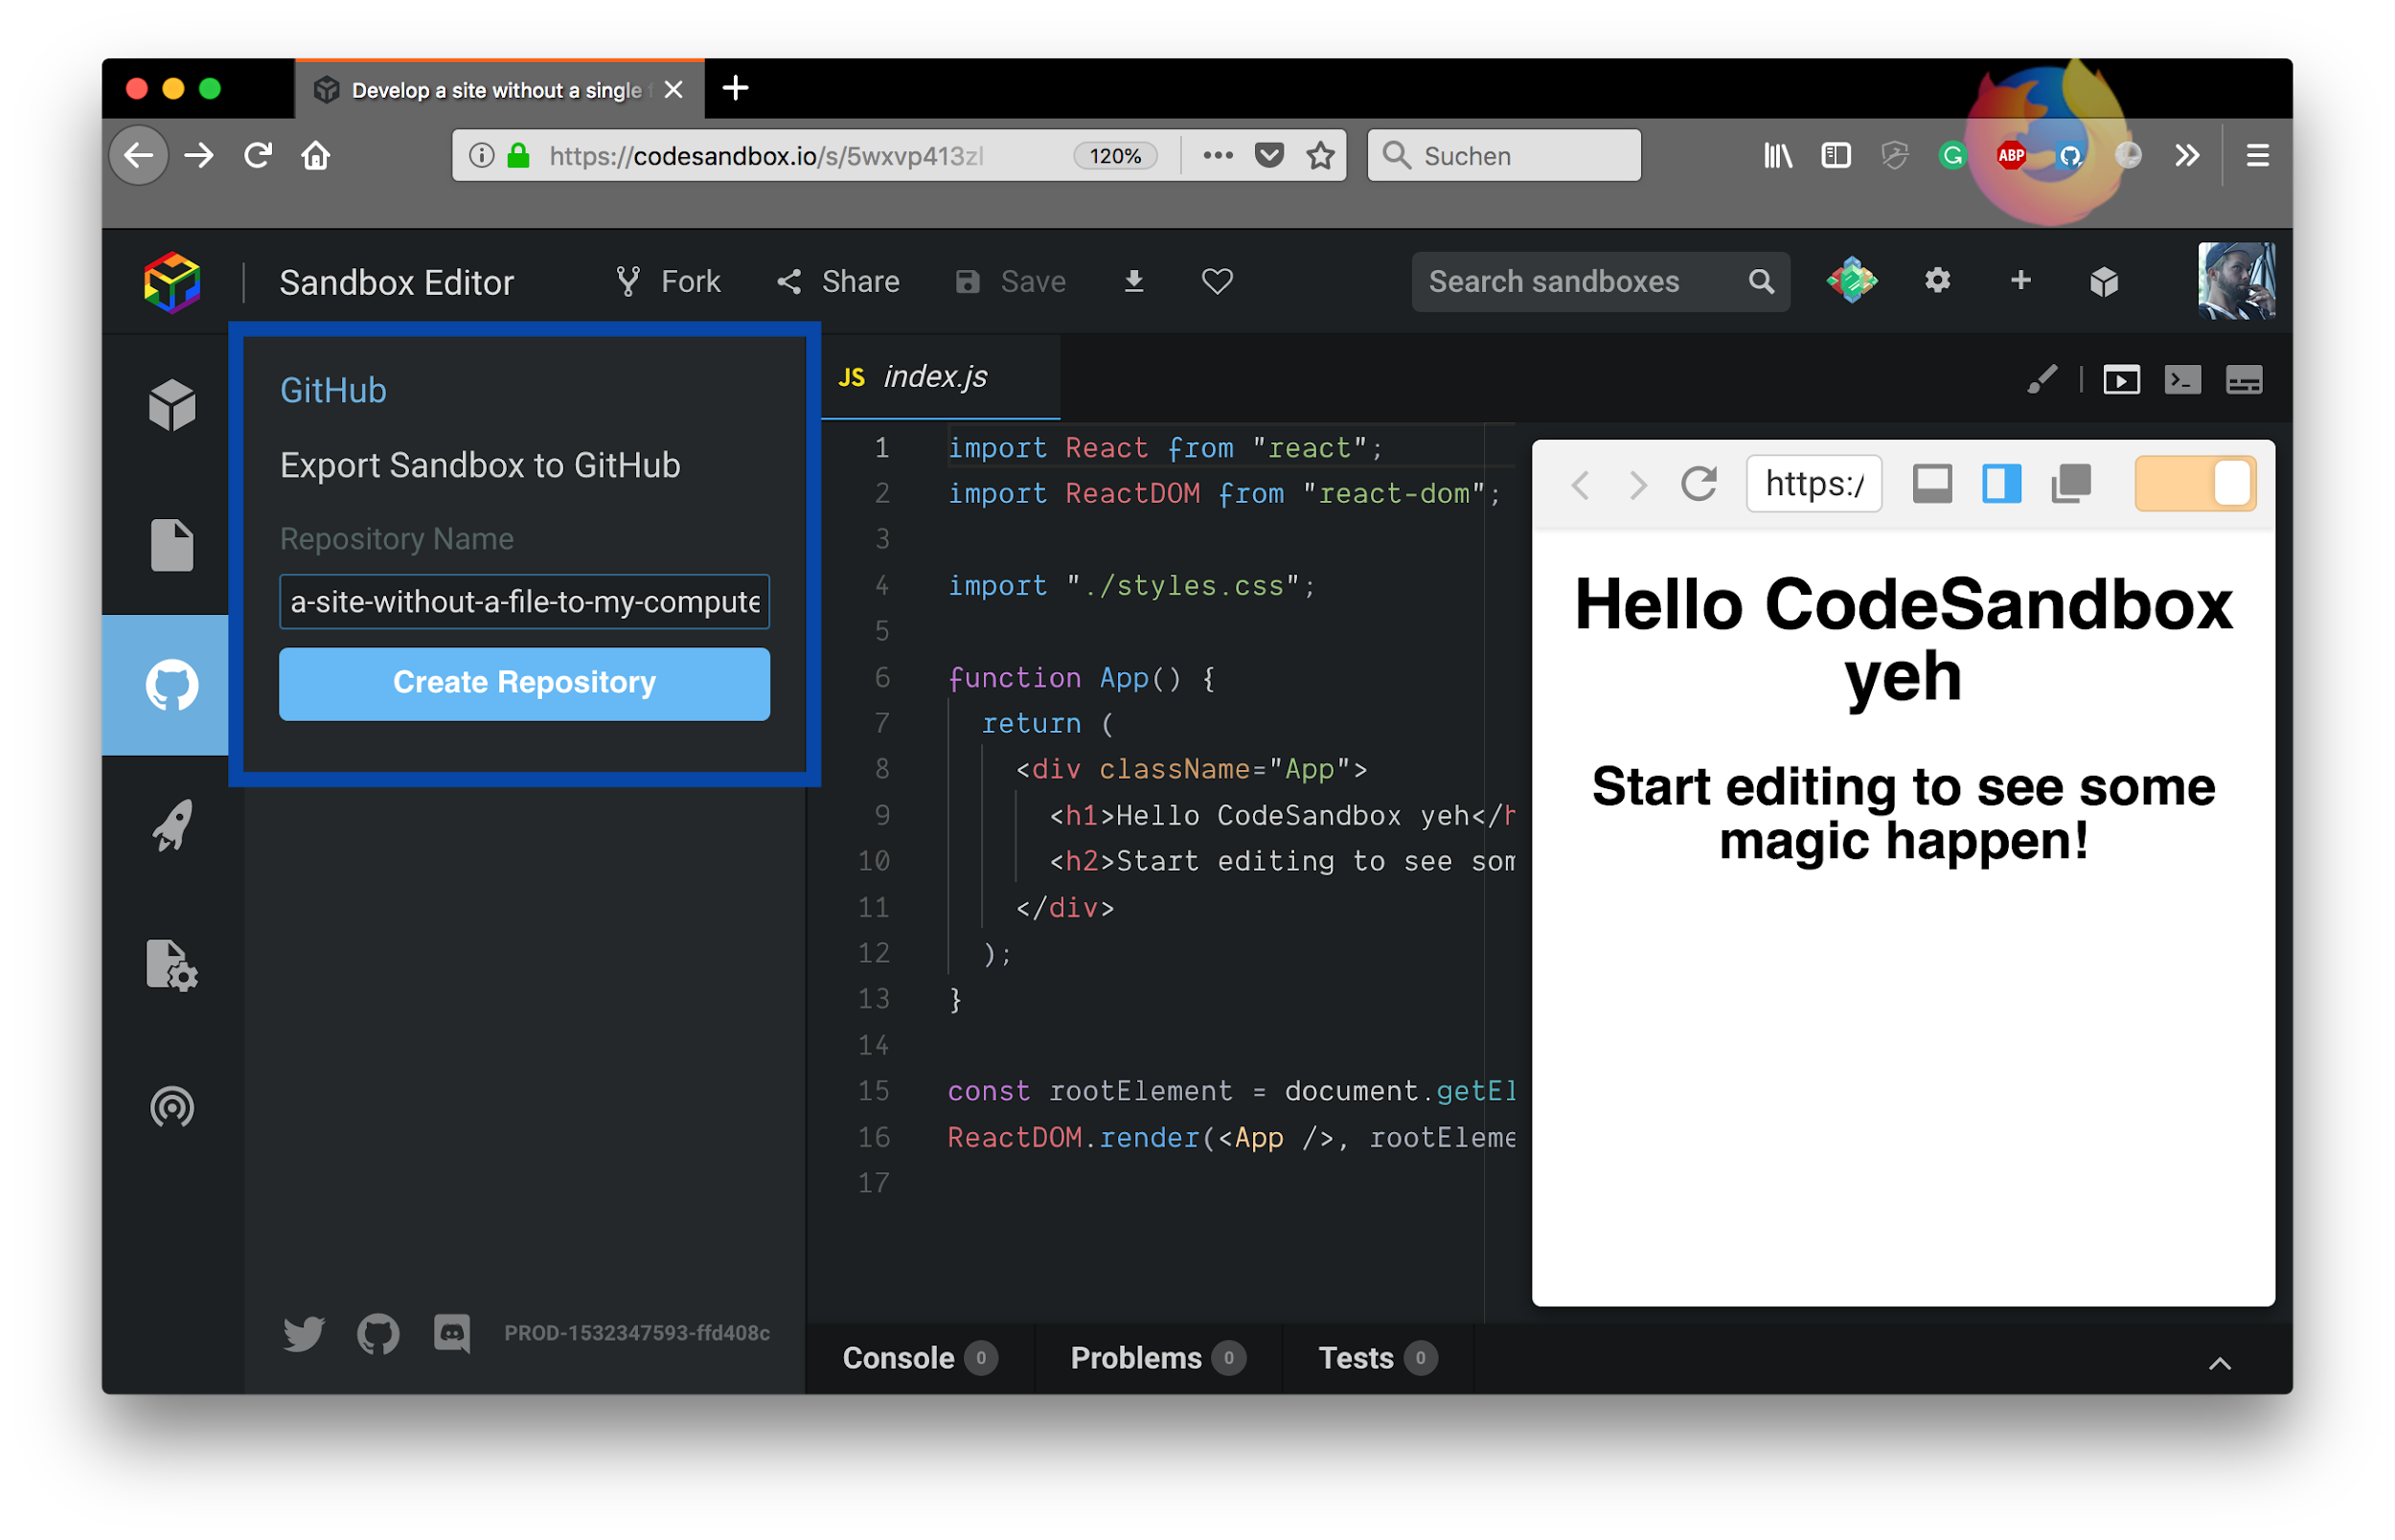 Develop, edit & deploy websites entirely in the cloud with